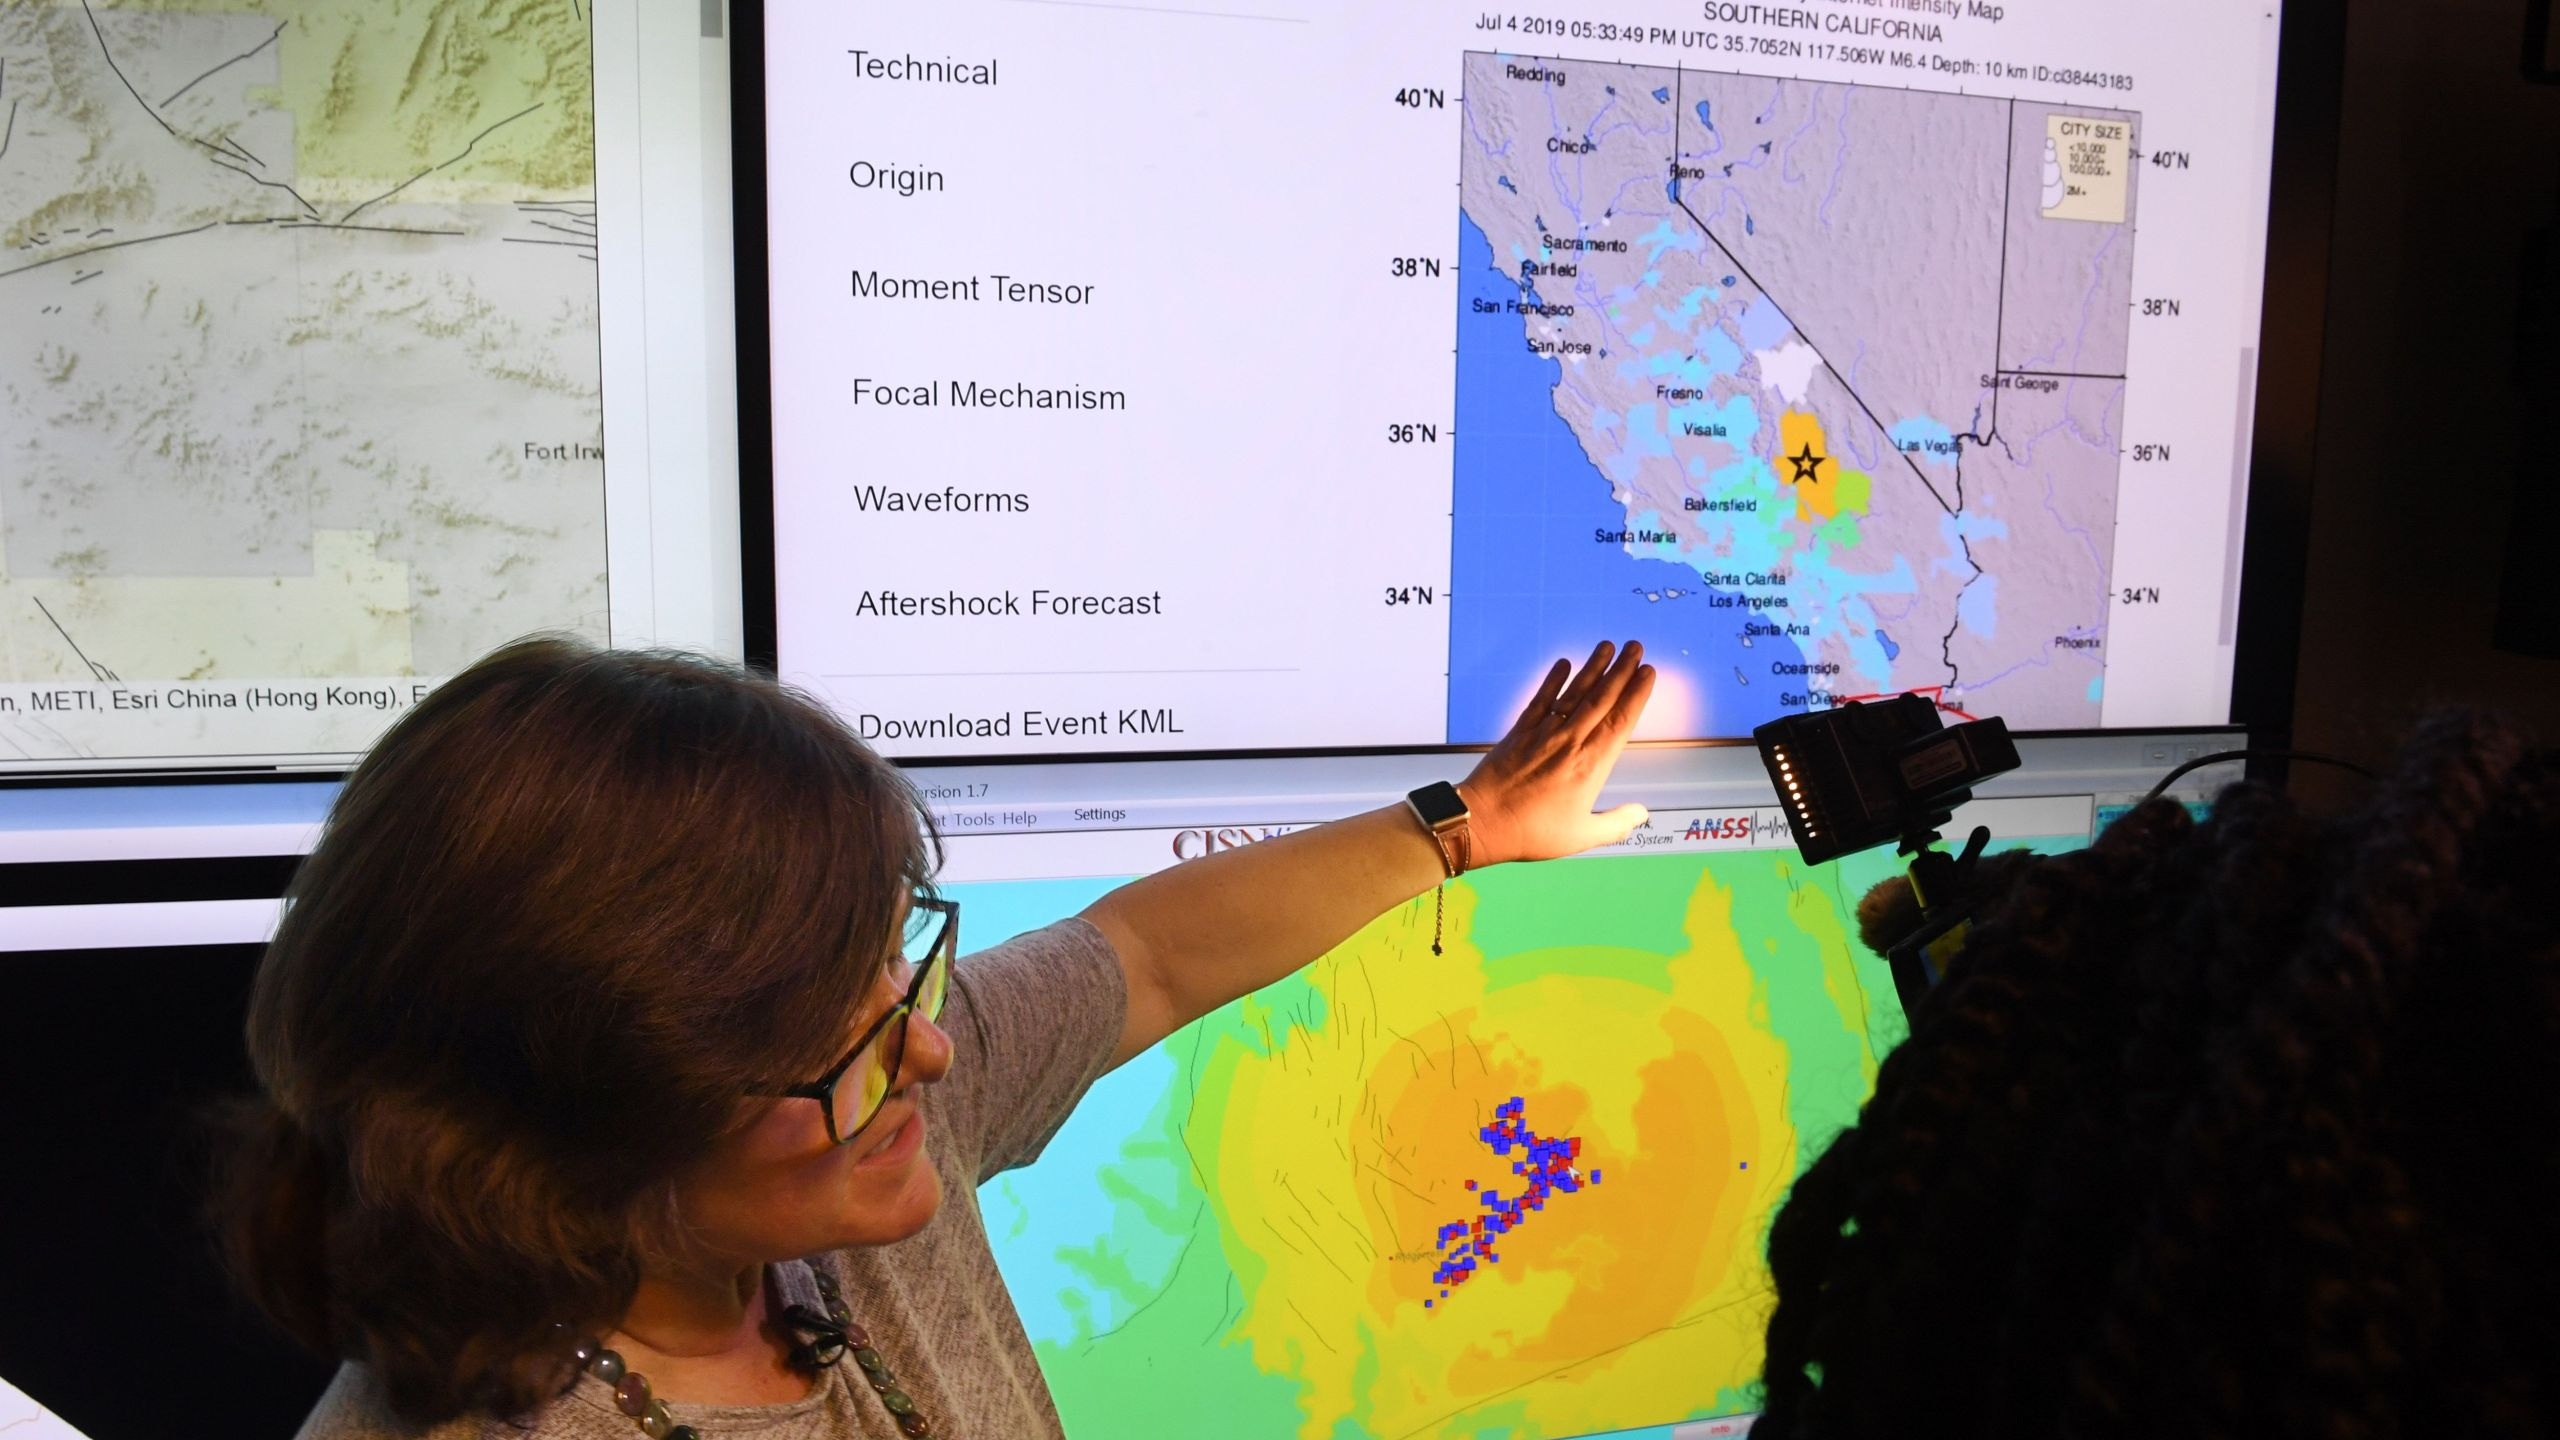 Seismologist Lucy Jones speaks during a media briefing at the Caltech Seismological Laboratory in Pasadena following the 6.4 magnitude Searles Valley earthquake near Ridgecrest on July 4, 2019. (Credit: Robyn Beck / AFP / Getty Images)